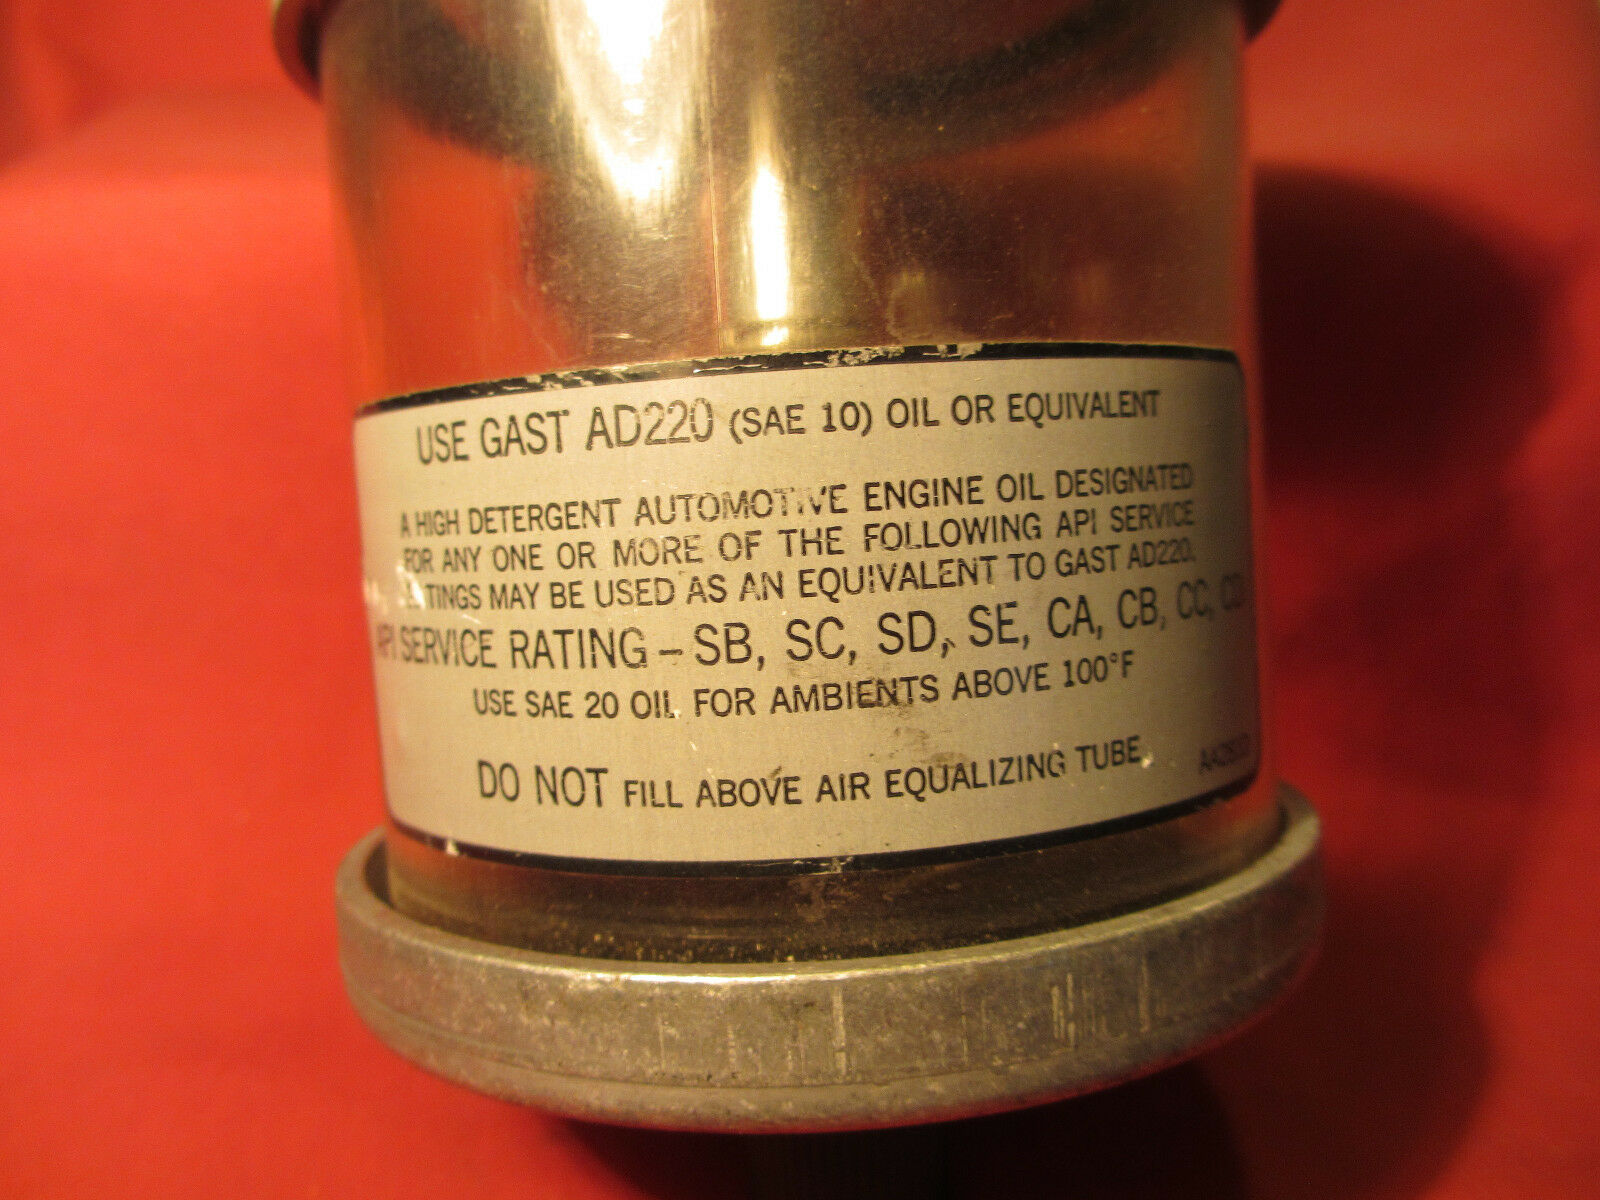 Spring Loaded Oil Reservoir Use with AD220 Gast AA960-1